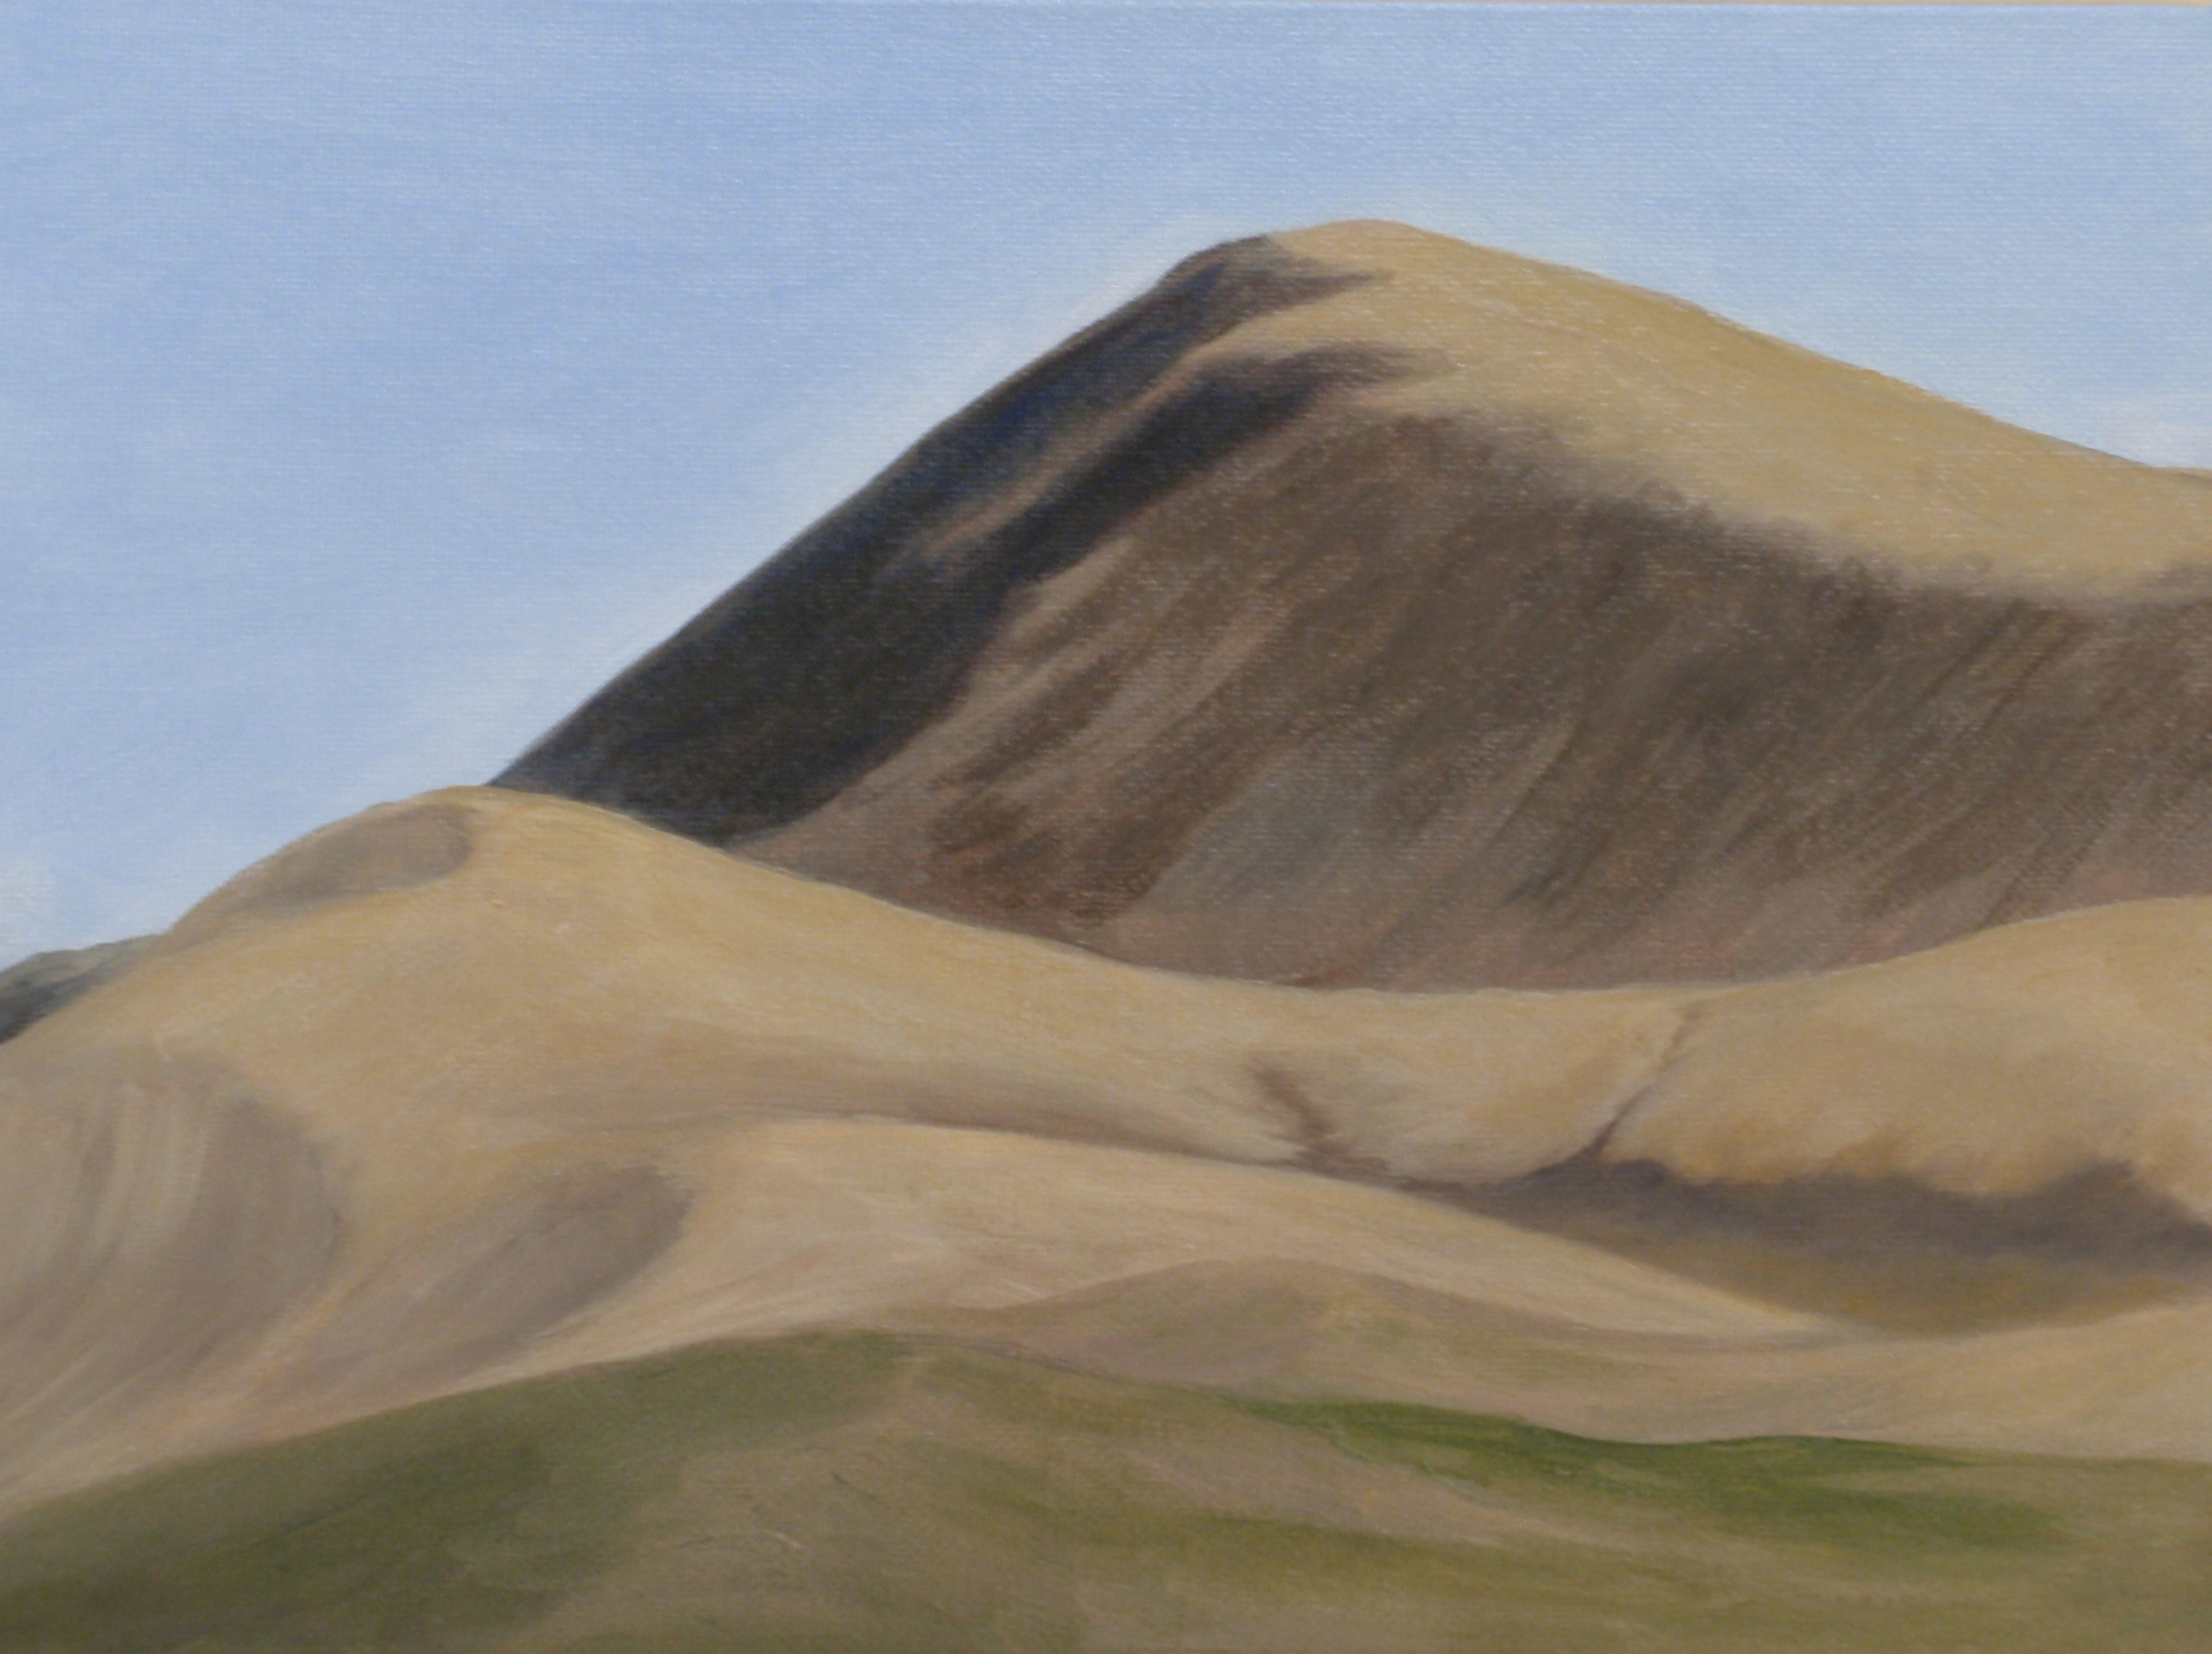 Danyel Dean | Paintings | Santa Barbara, California | Smithers, British Columbia | Hills on 395